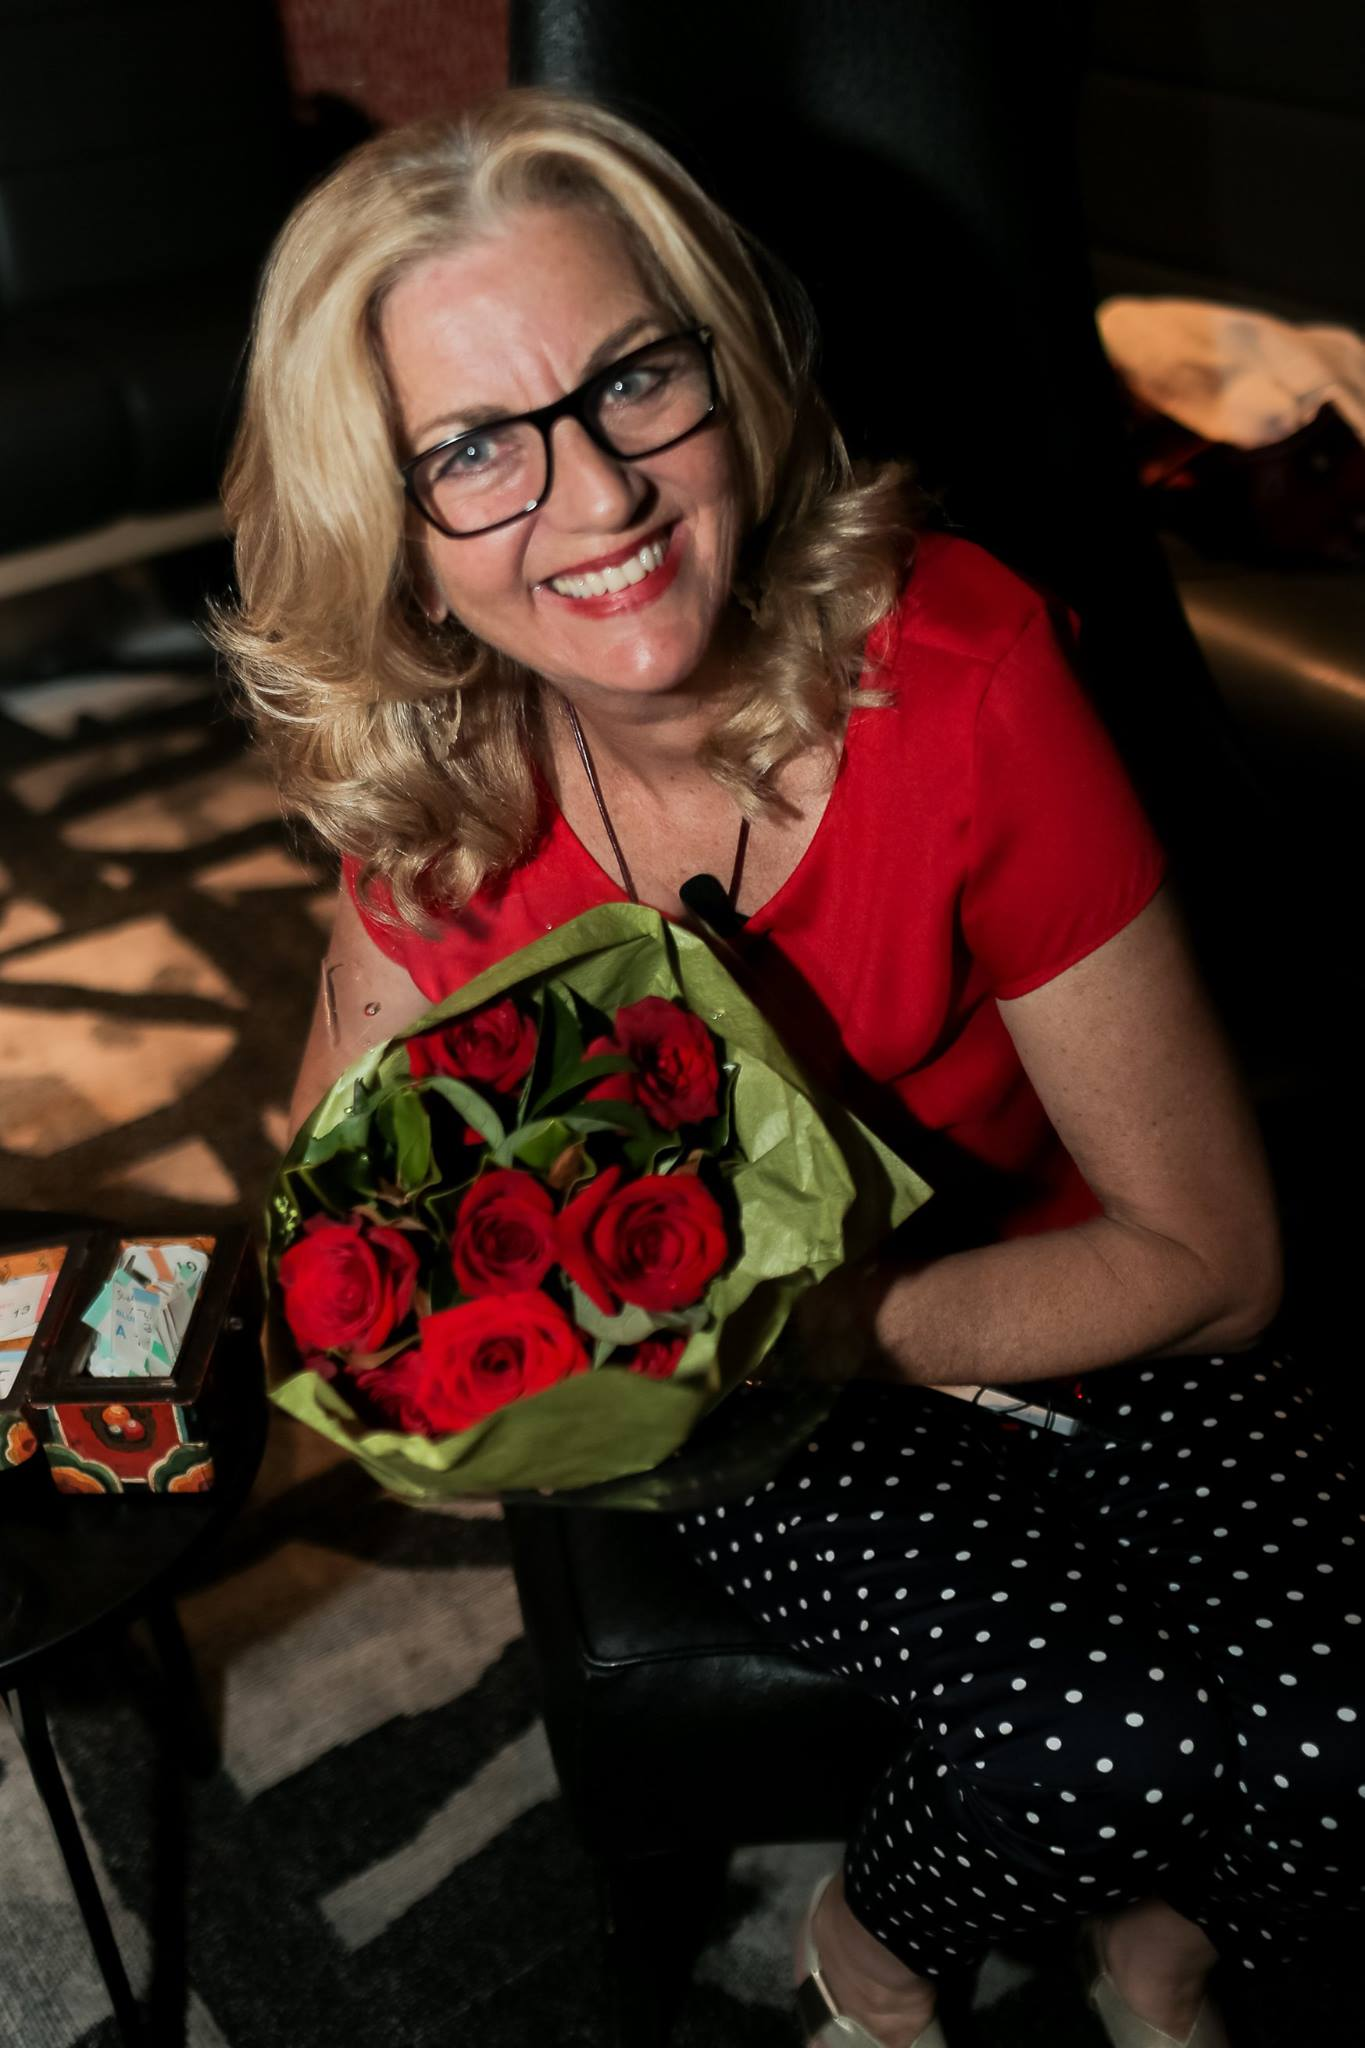 Nothing like red roses at a Red Party! Thank you Jean Kittson for your generosity of spirit and amazing ability to entertain and share stories about periods and menopause with such aplomb and hilarity. Mama Creatives loves you!